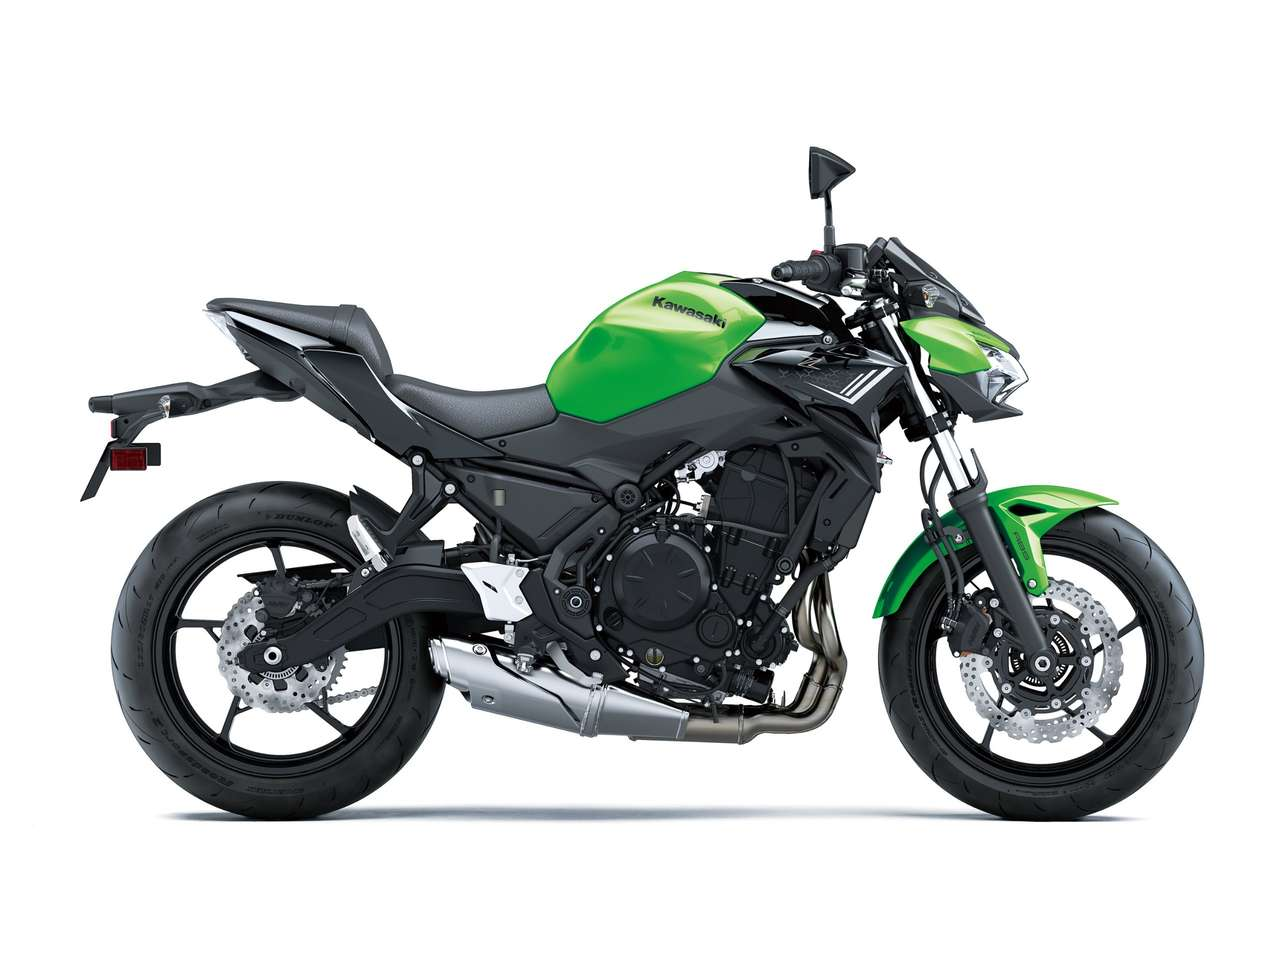 Z650 Candy Lime Green / Metallic Spark Black